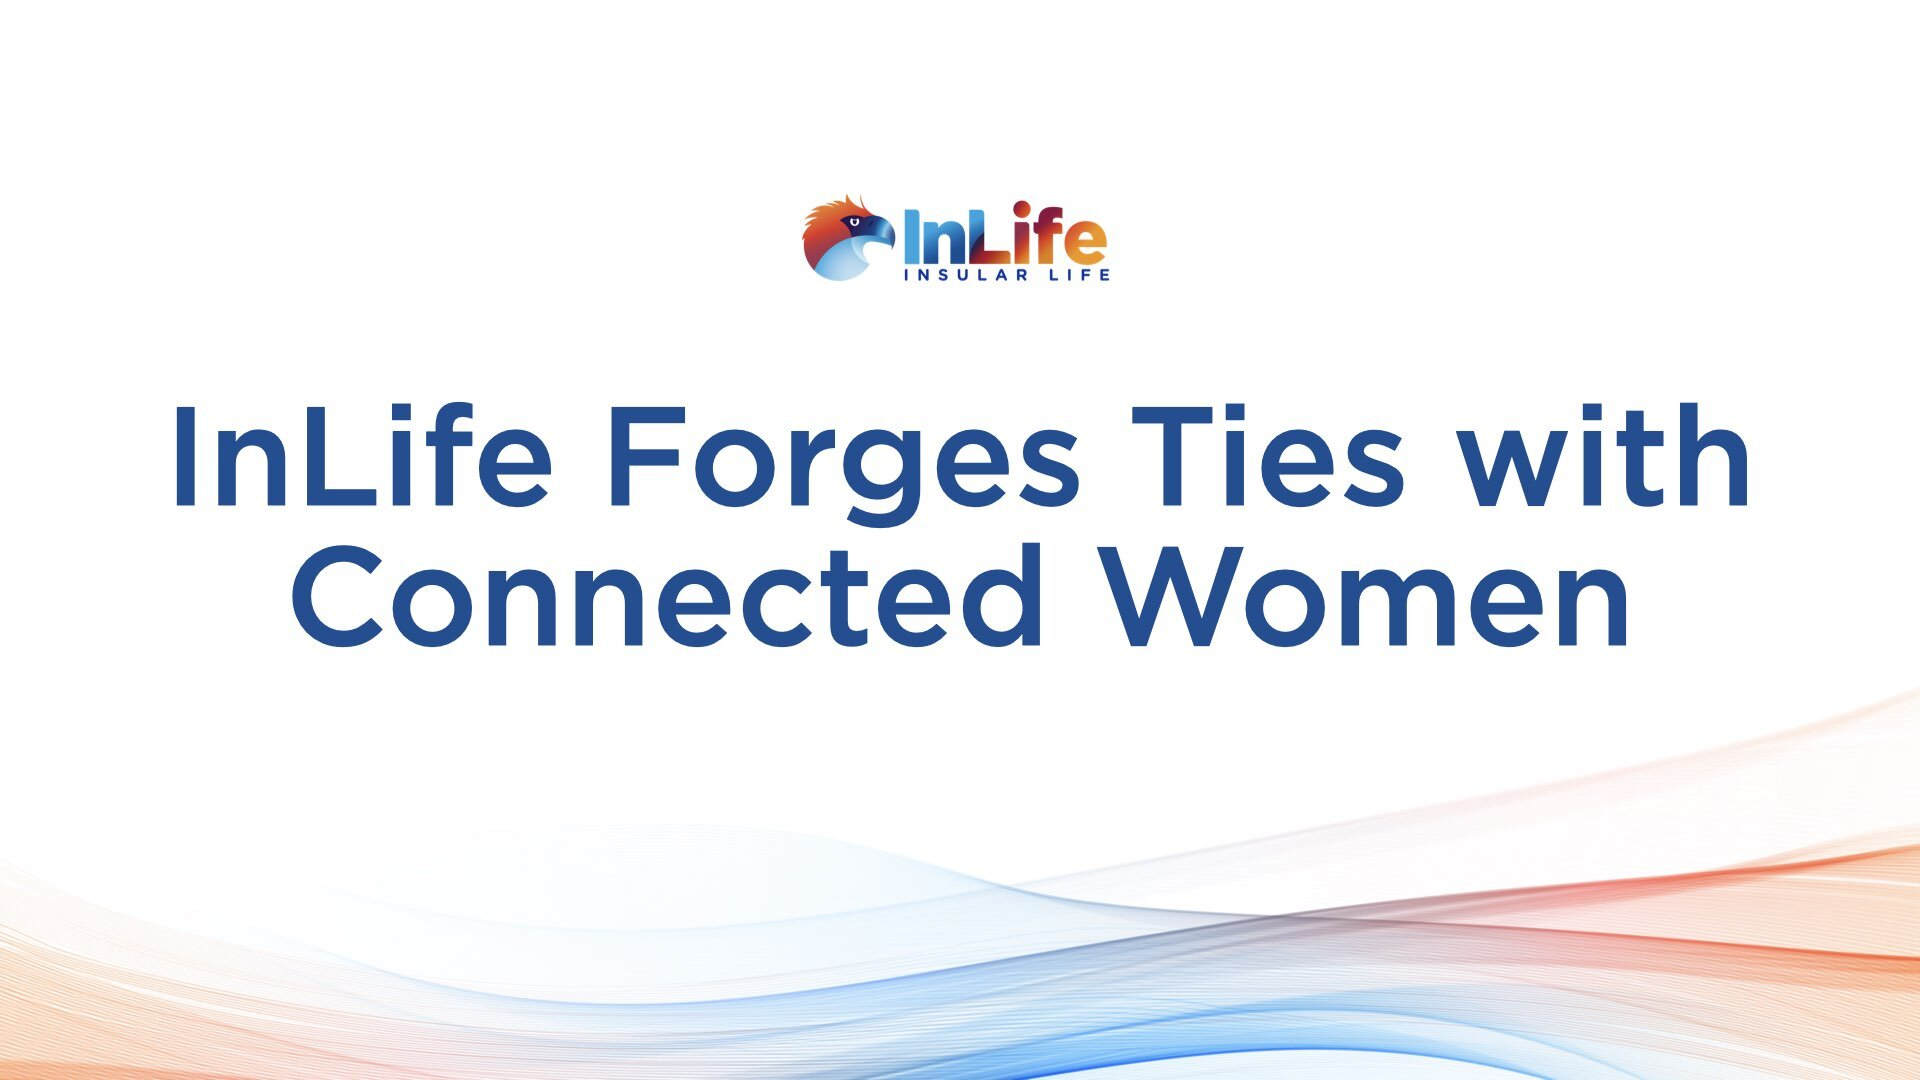 InLife And Connected Women Forge Ties For Better Income Opportunities For Women